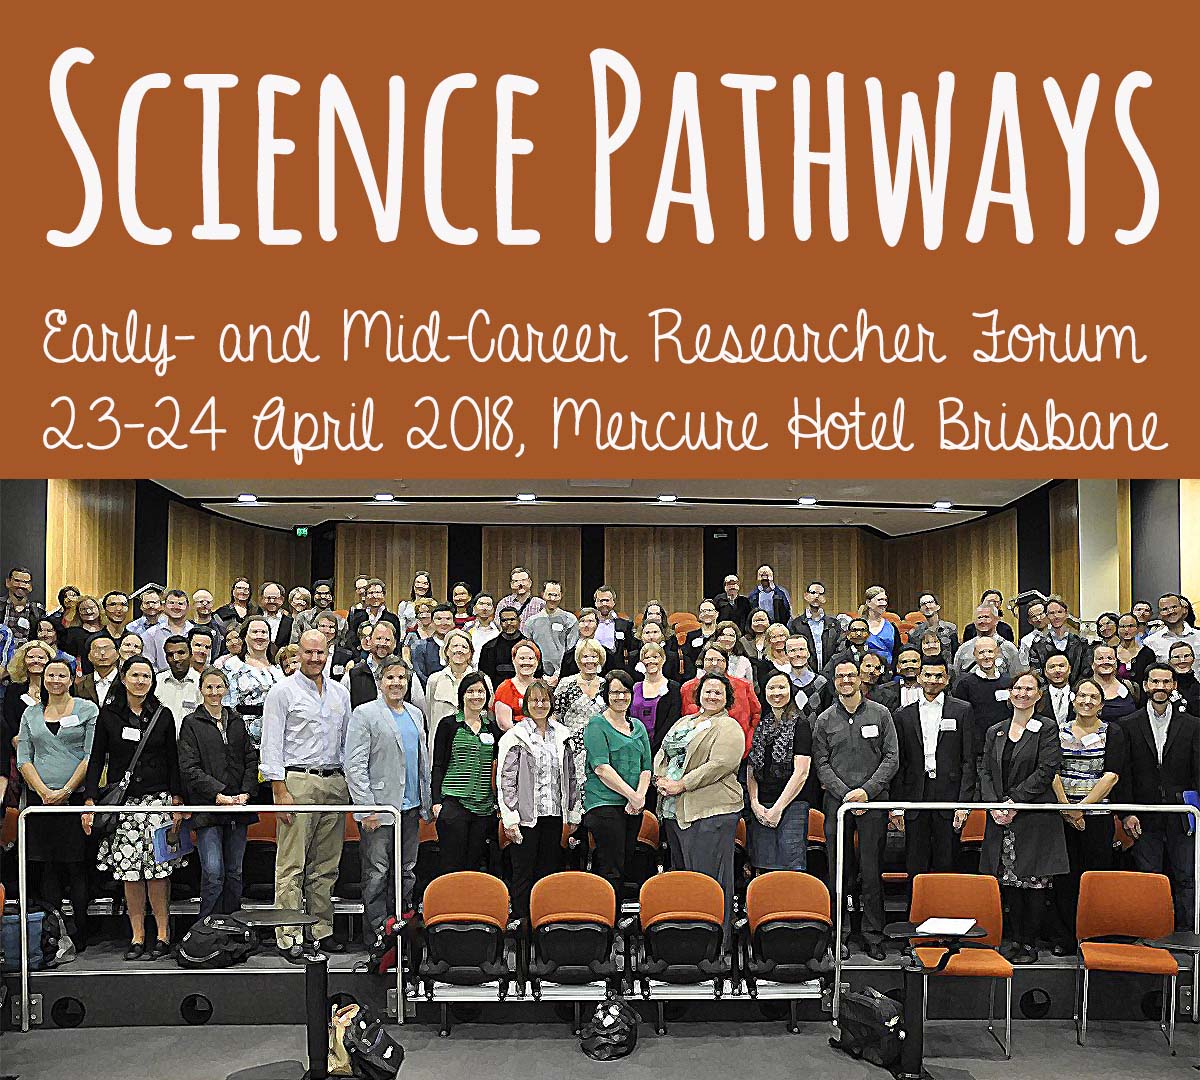 Event: Making Science Inclusive